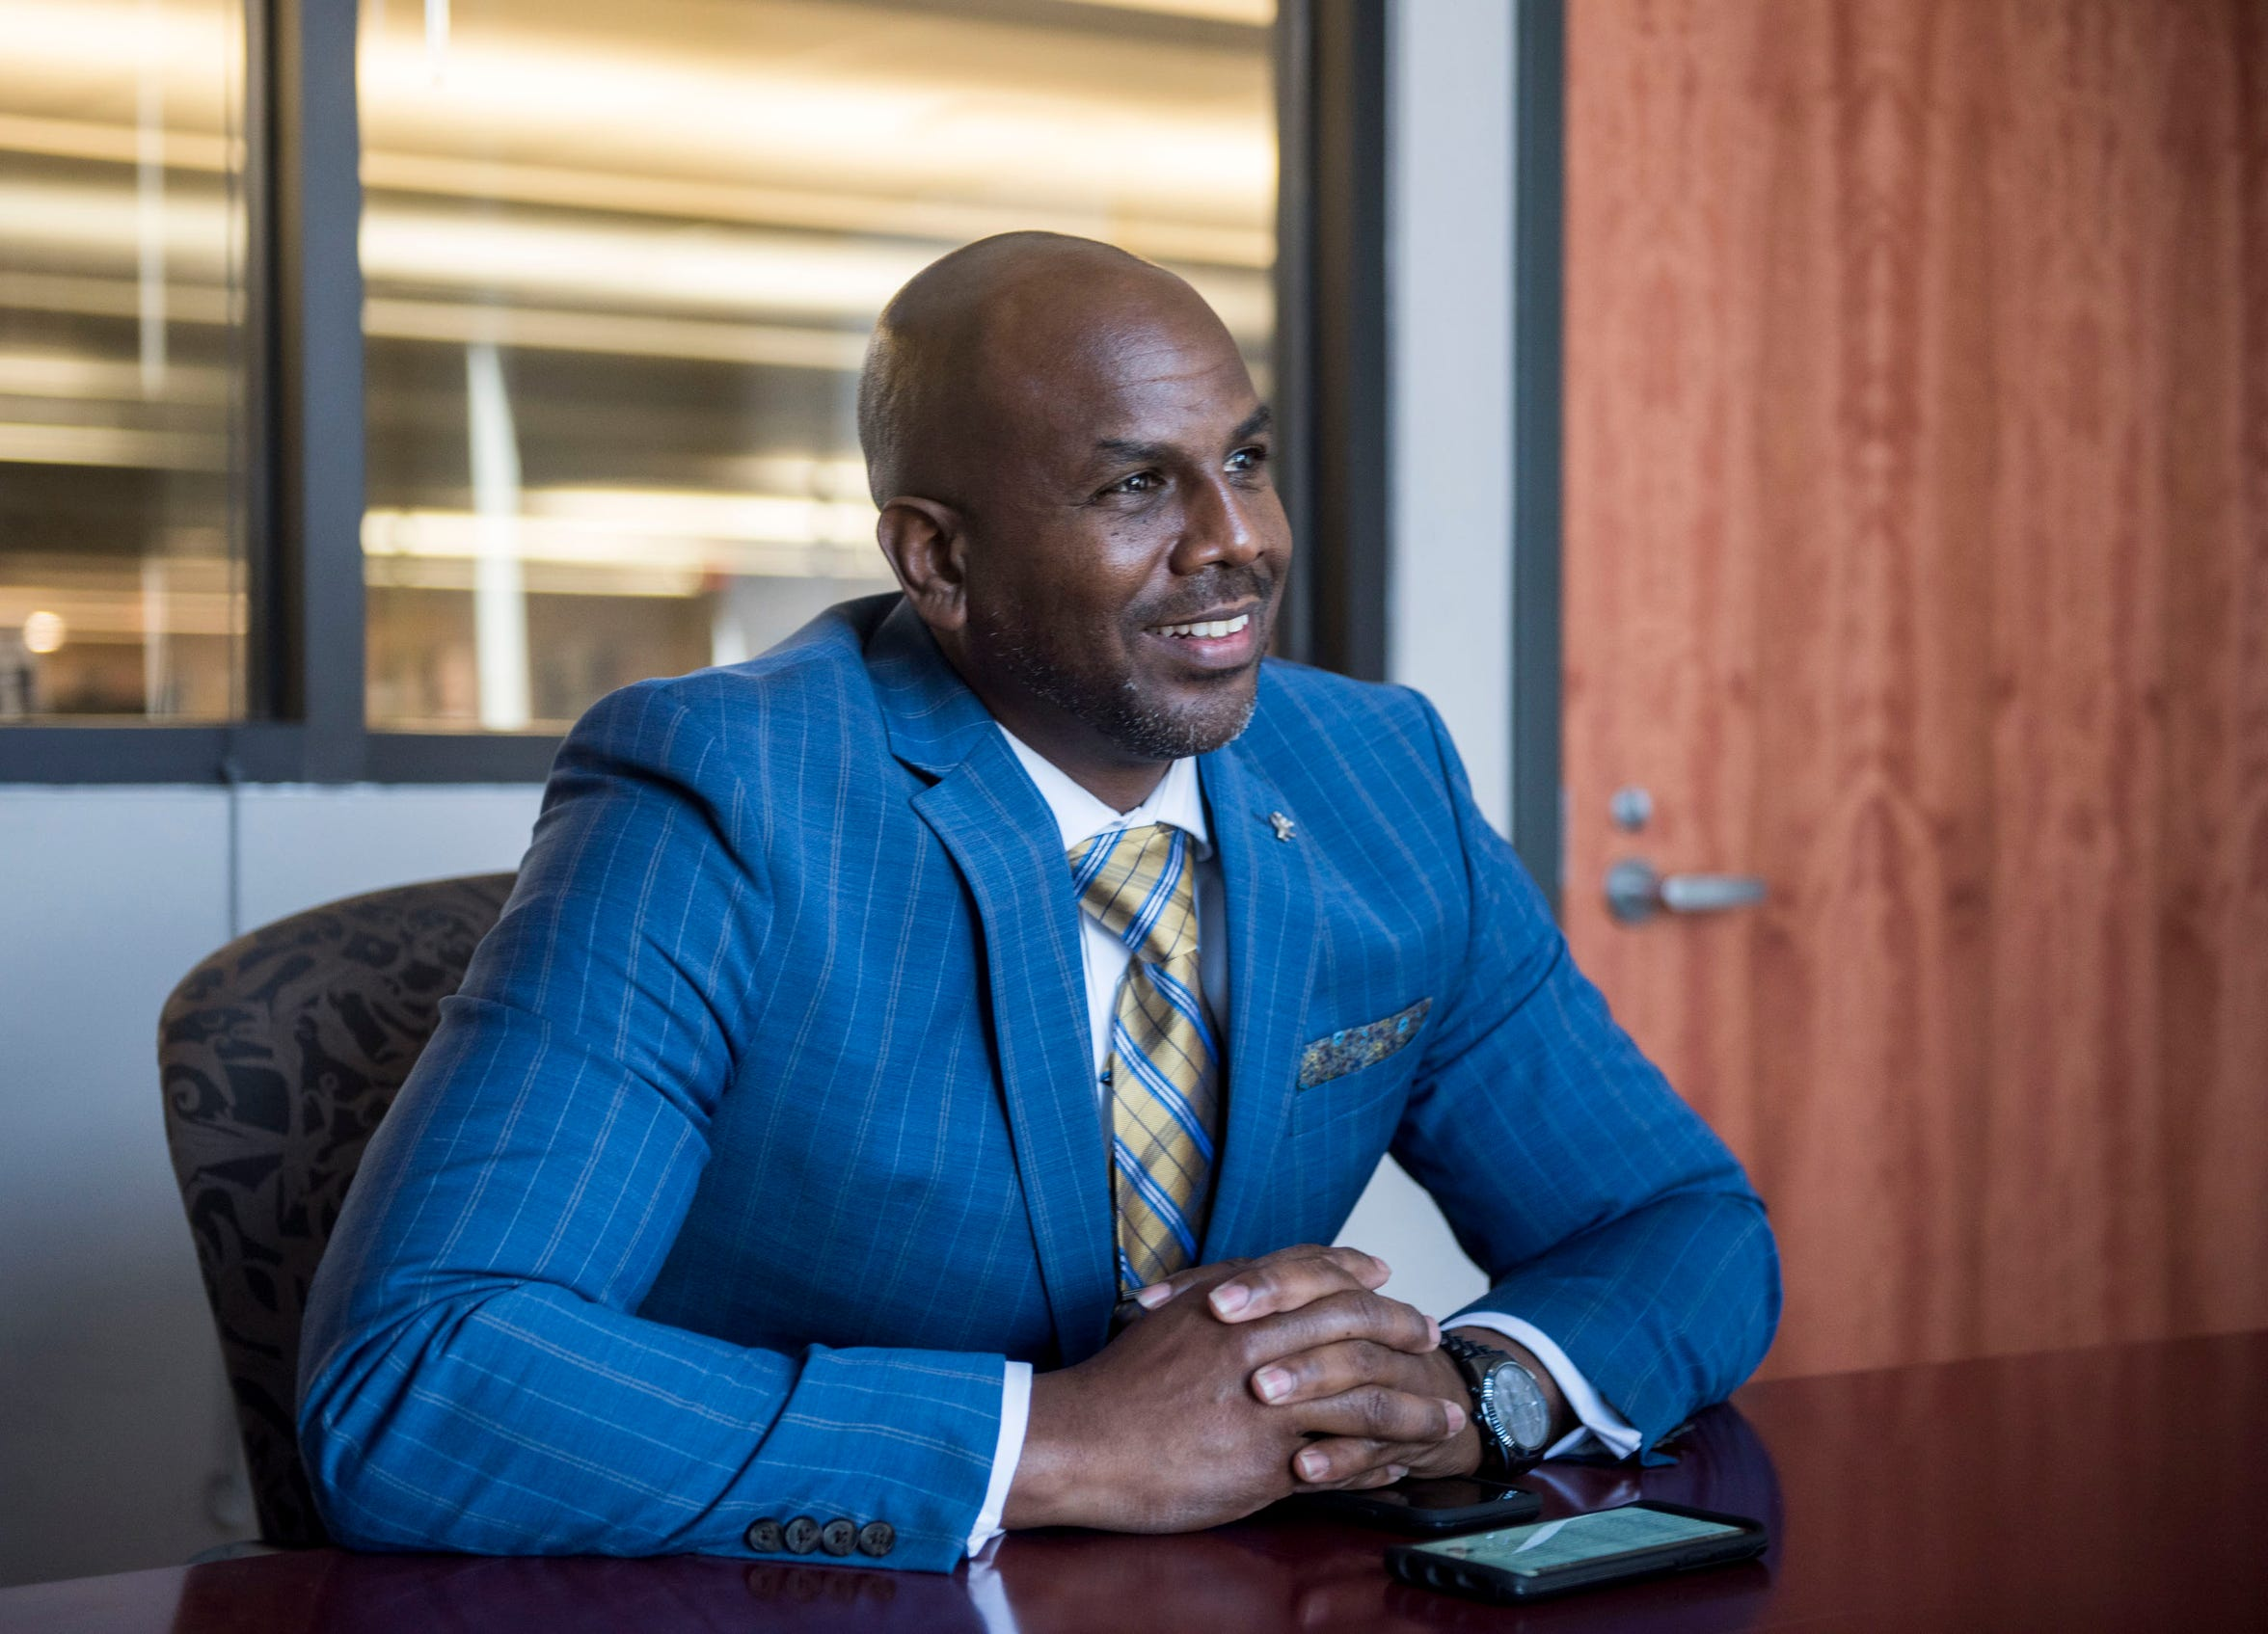 Oronde Mitchell, candidate for city council district 6, is interviewed in Montgomery, Ala., on Tuesday, March 12, 2019.